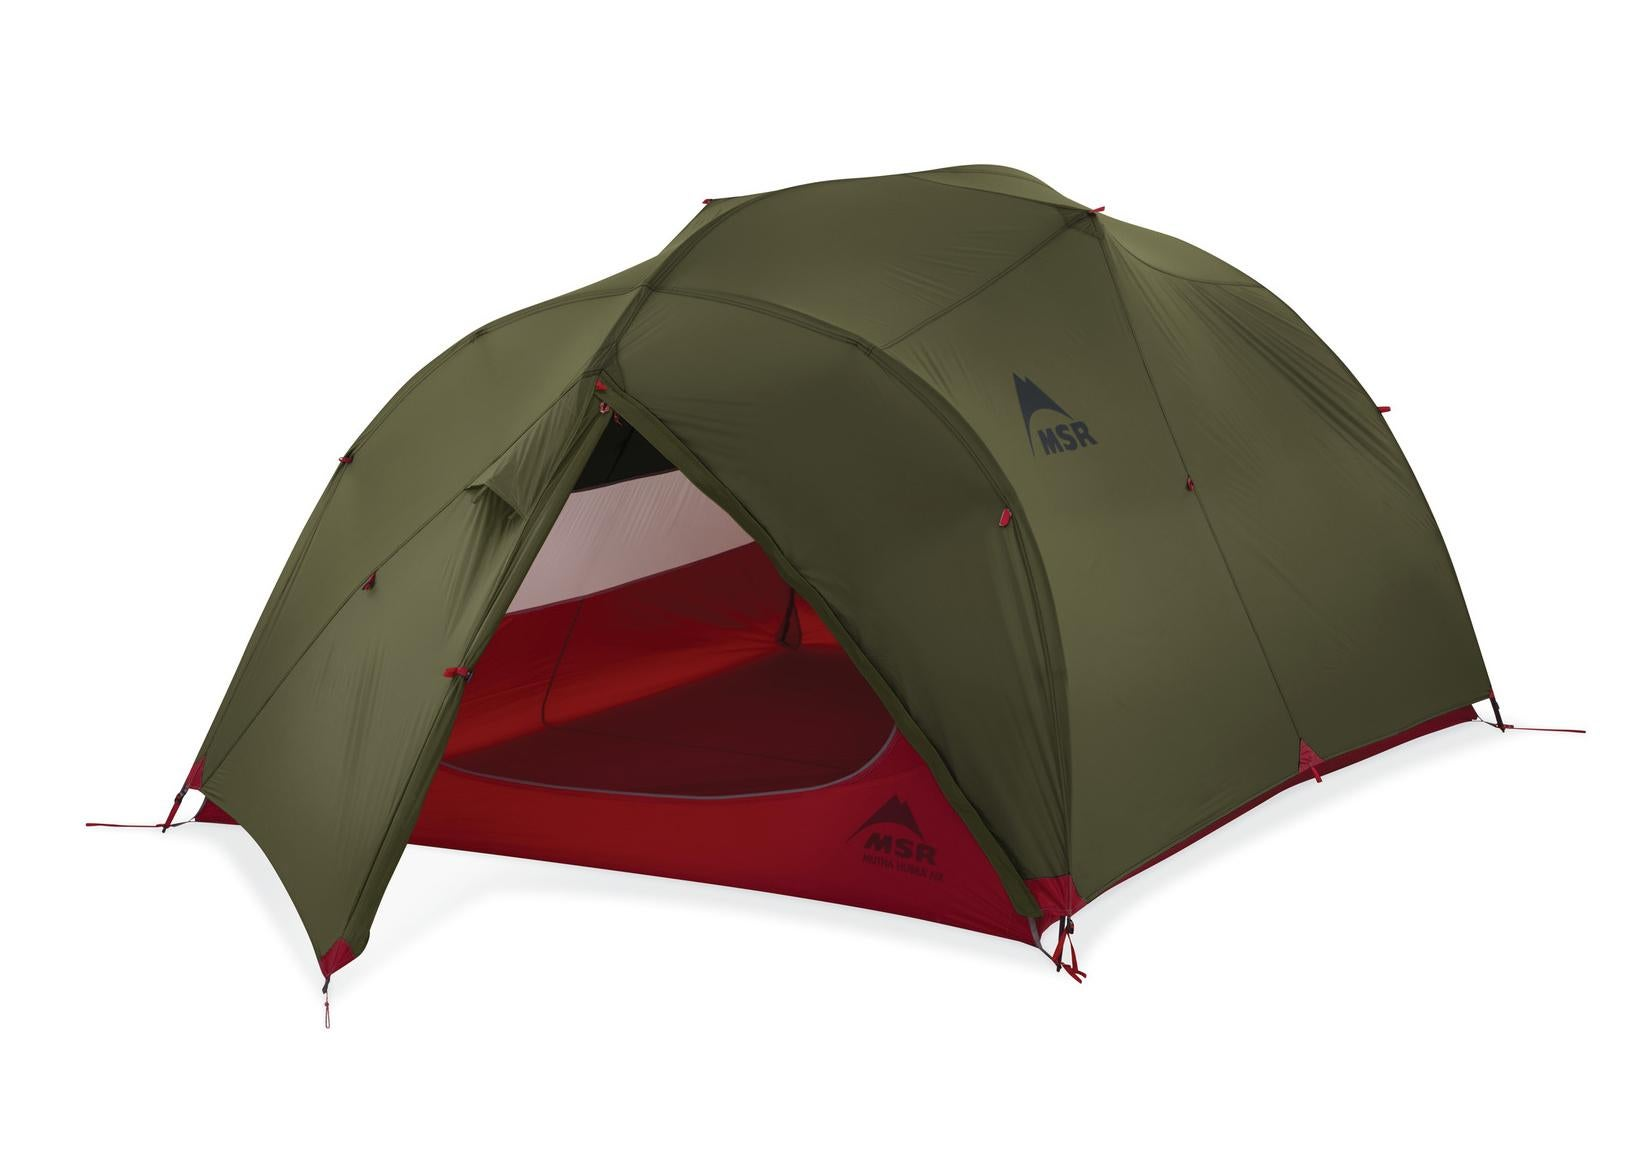 online store d261d f50d1 Best family tents that are spacious, portable and quick to ...